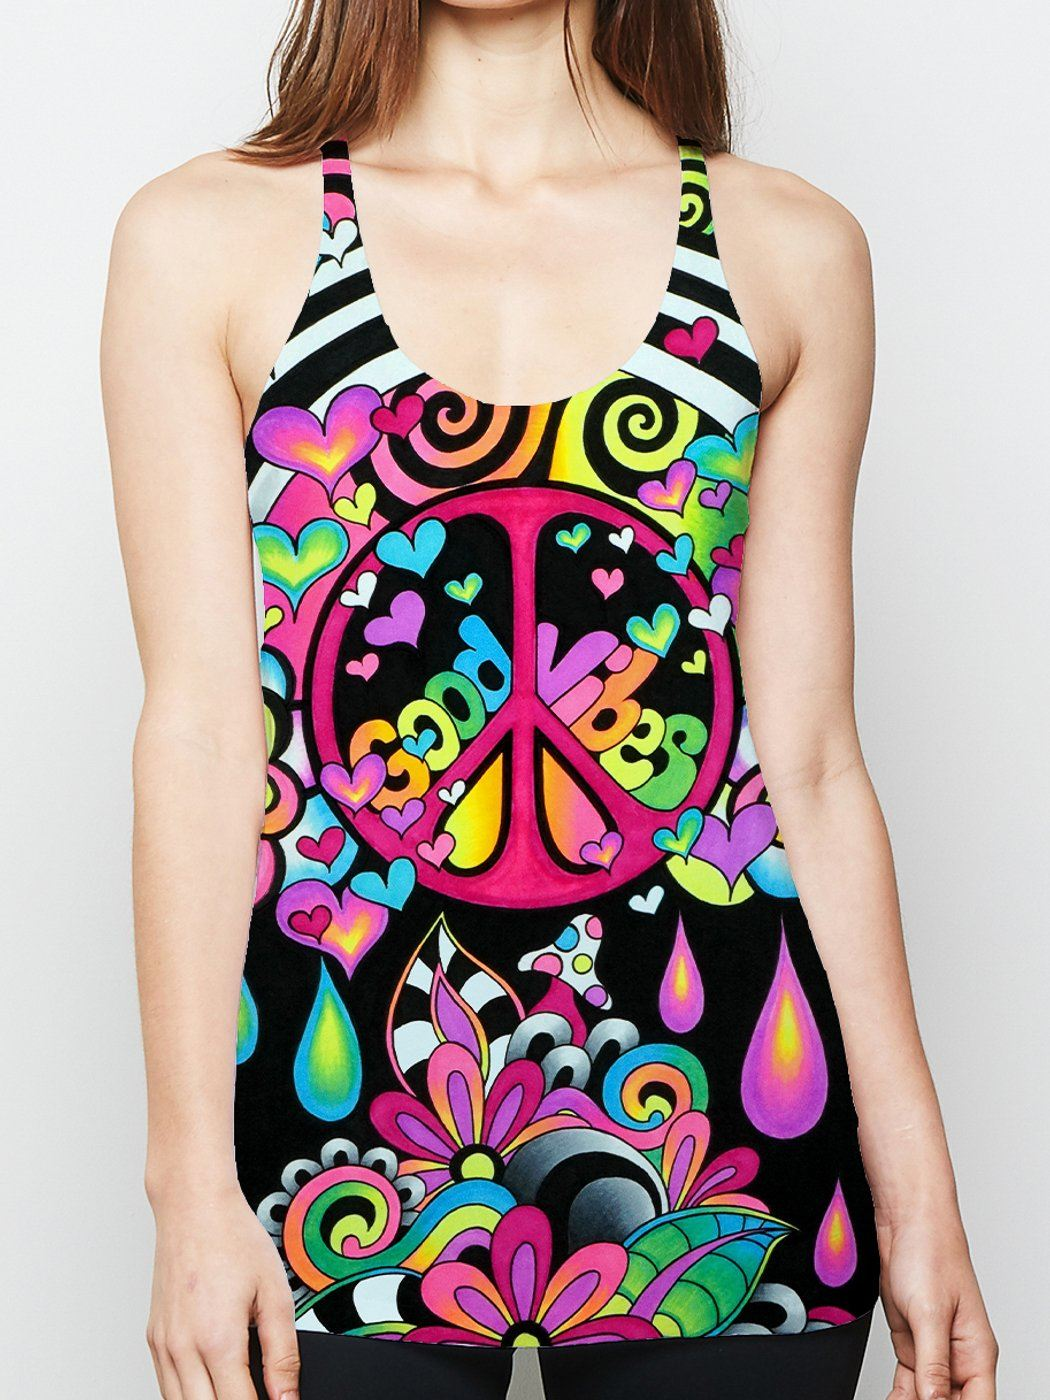 Brizmosphere Racerback Tank Top Tank Tops Electro Threads